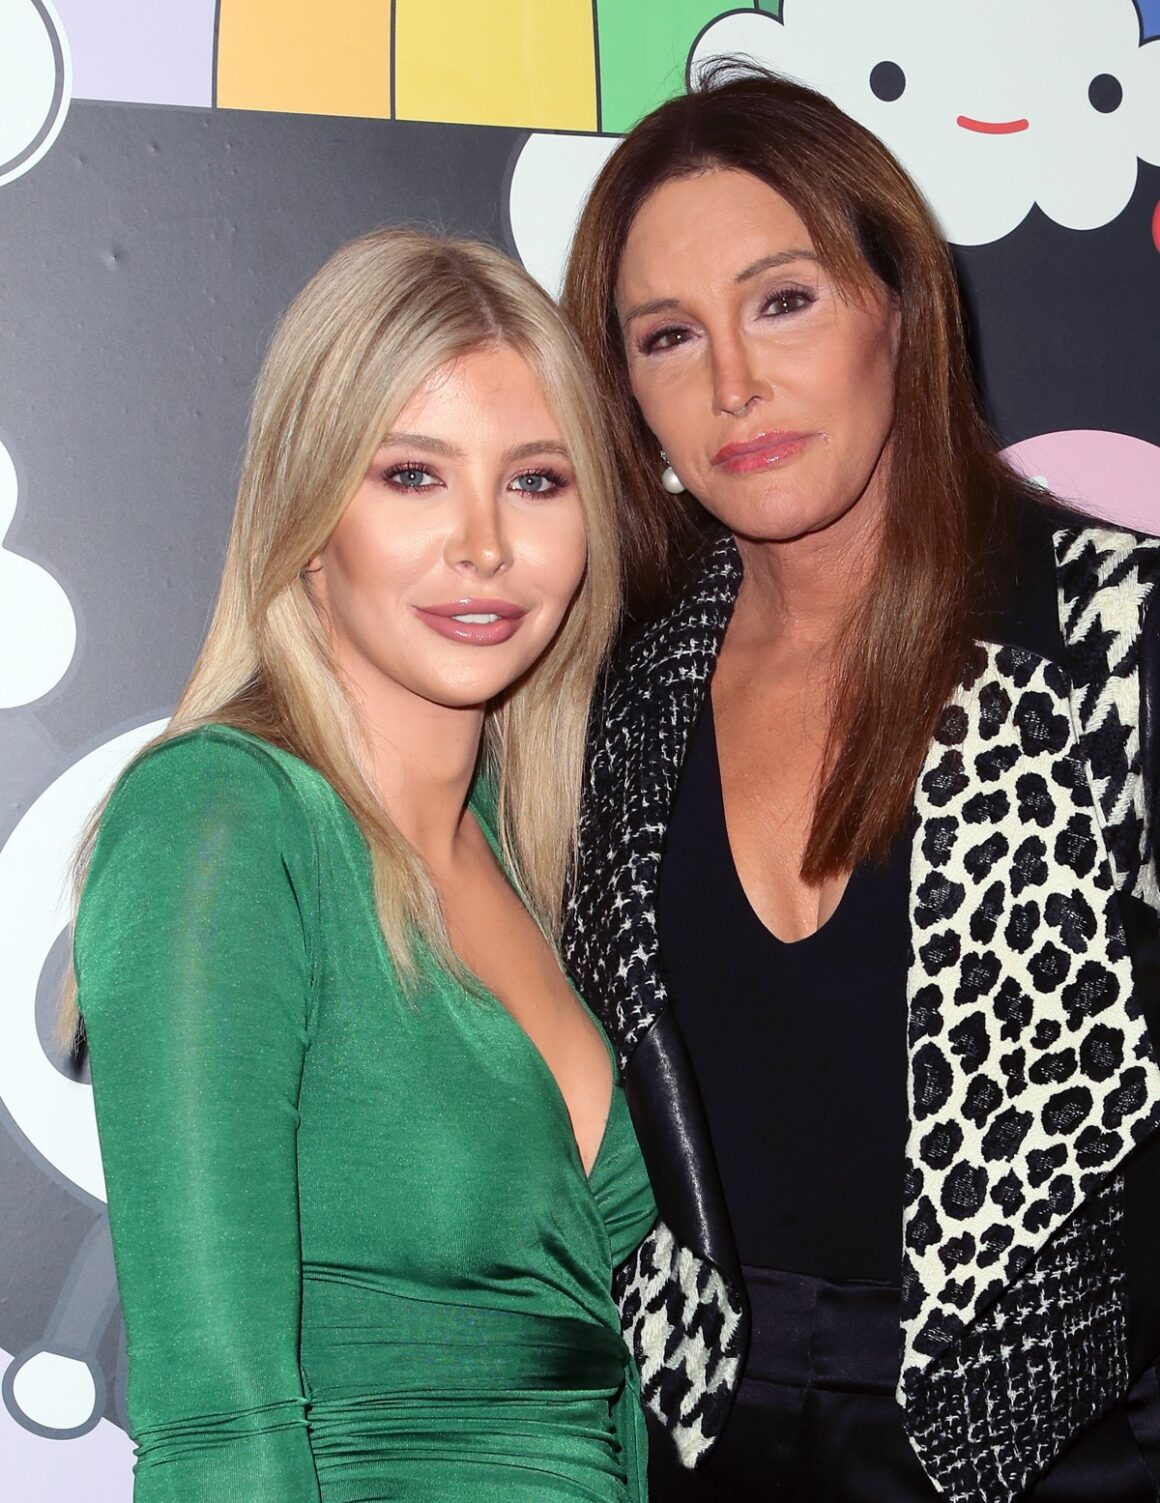 Sophia Hutchins and Caitlyn Jenner alice + olivia by Stacey Bendet x FriendsWithYou Collection LA Launch Party